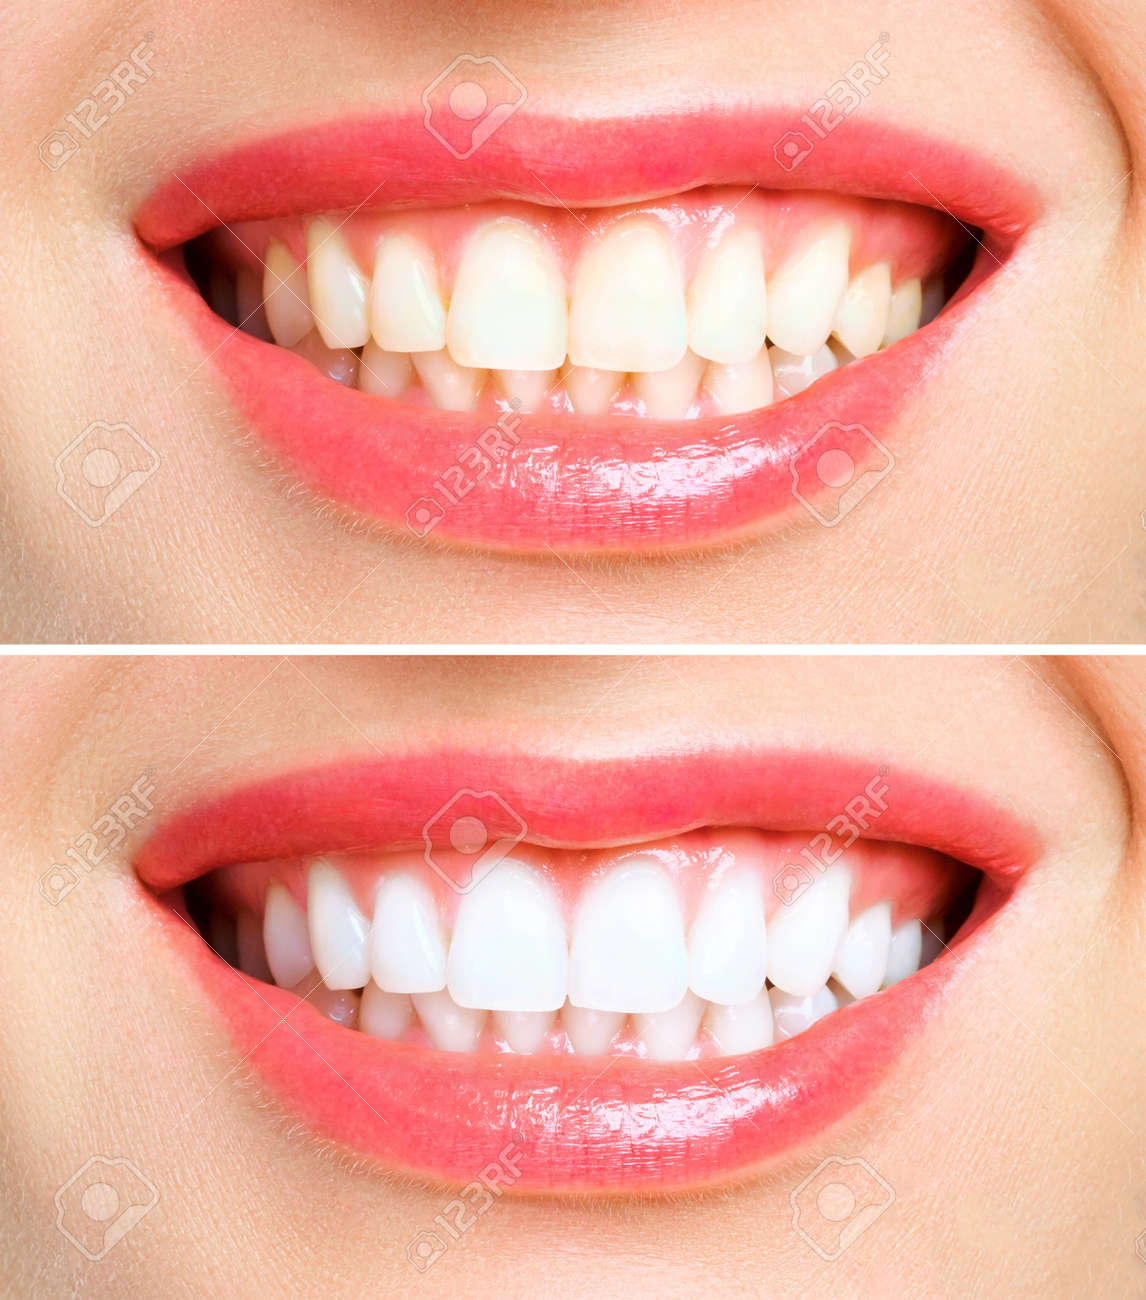 woman teeth before and after whitening. Over white background. Dental clinic patient. Image symbolizes oral care dentistry, stomatology - 131458308